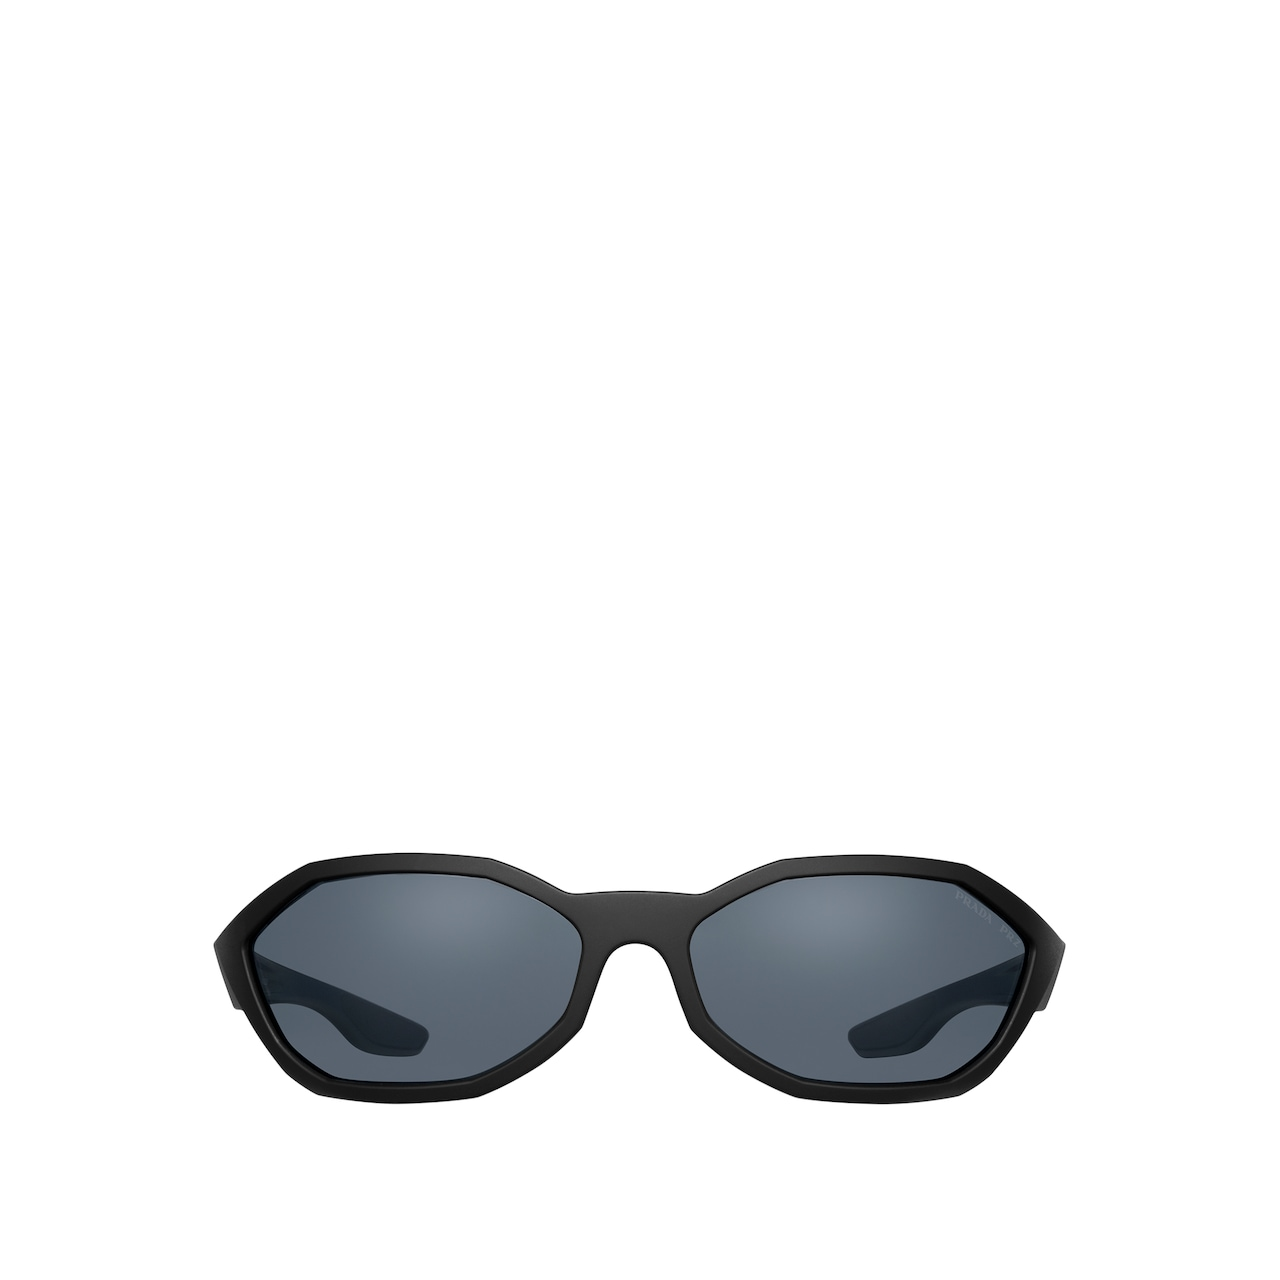 Prada Eyewear Collection sunglasses